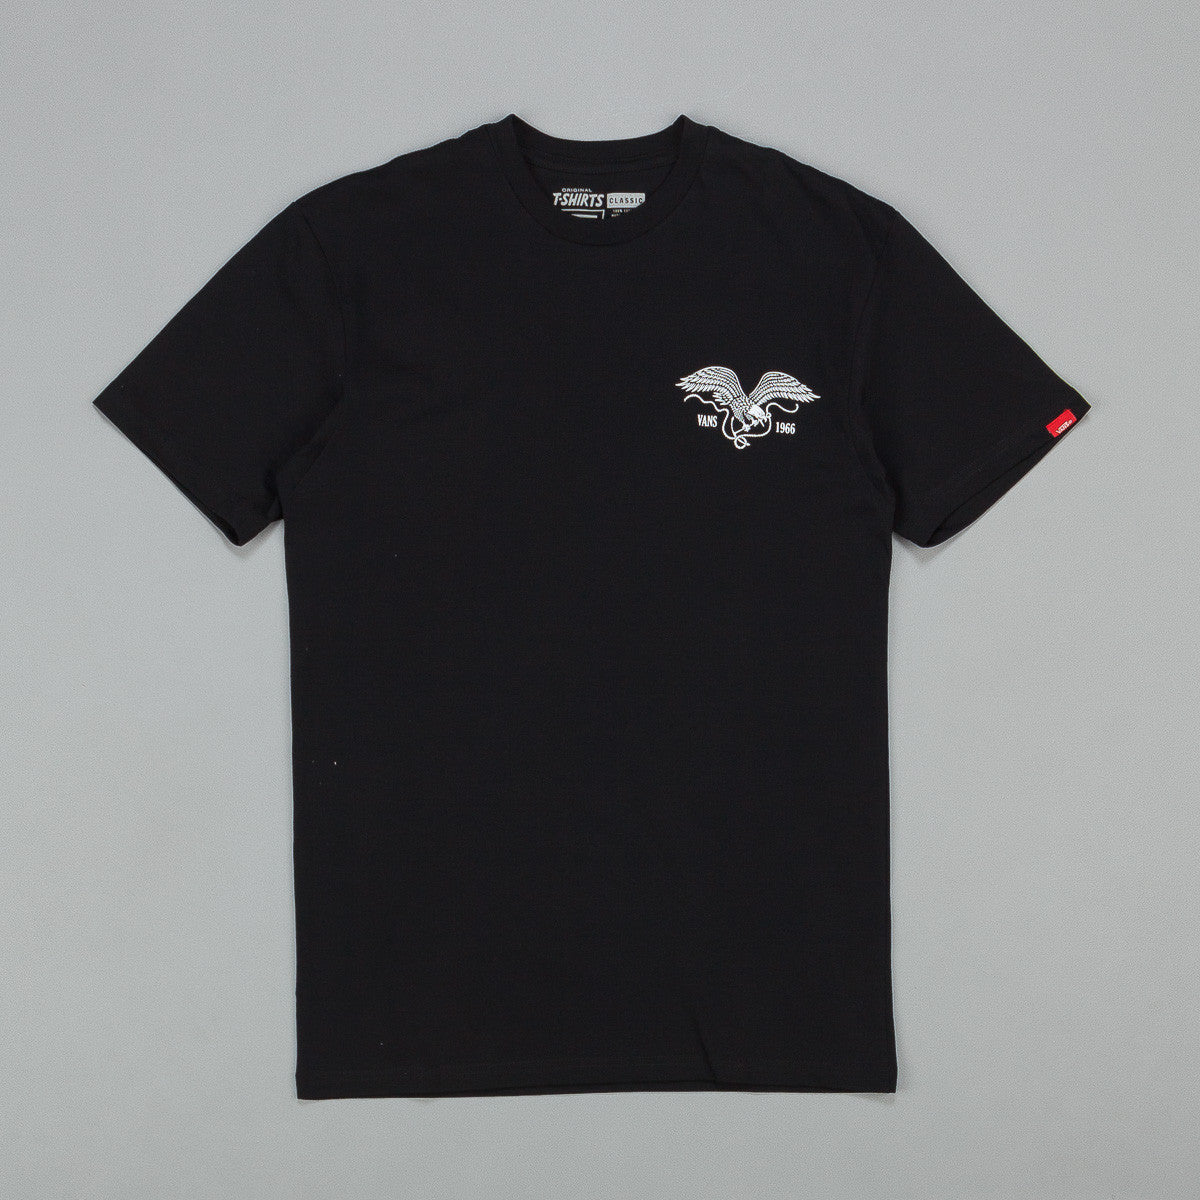 Vans Anchor Clanker T-Shirt